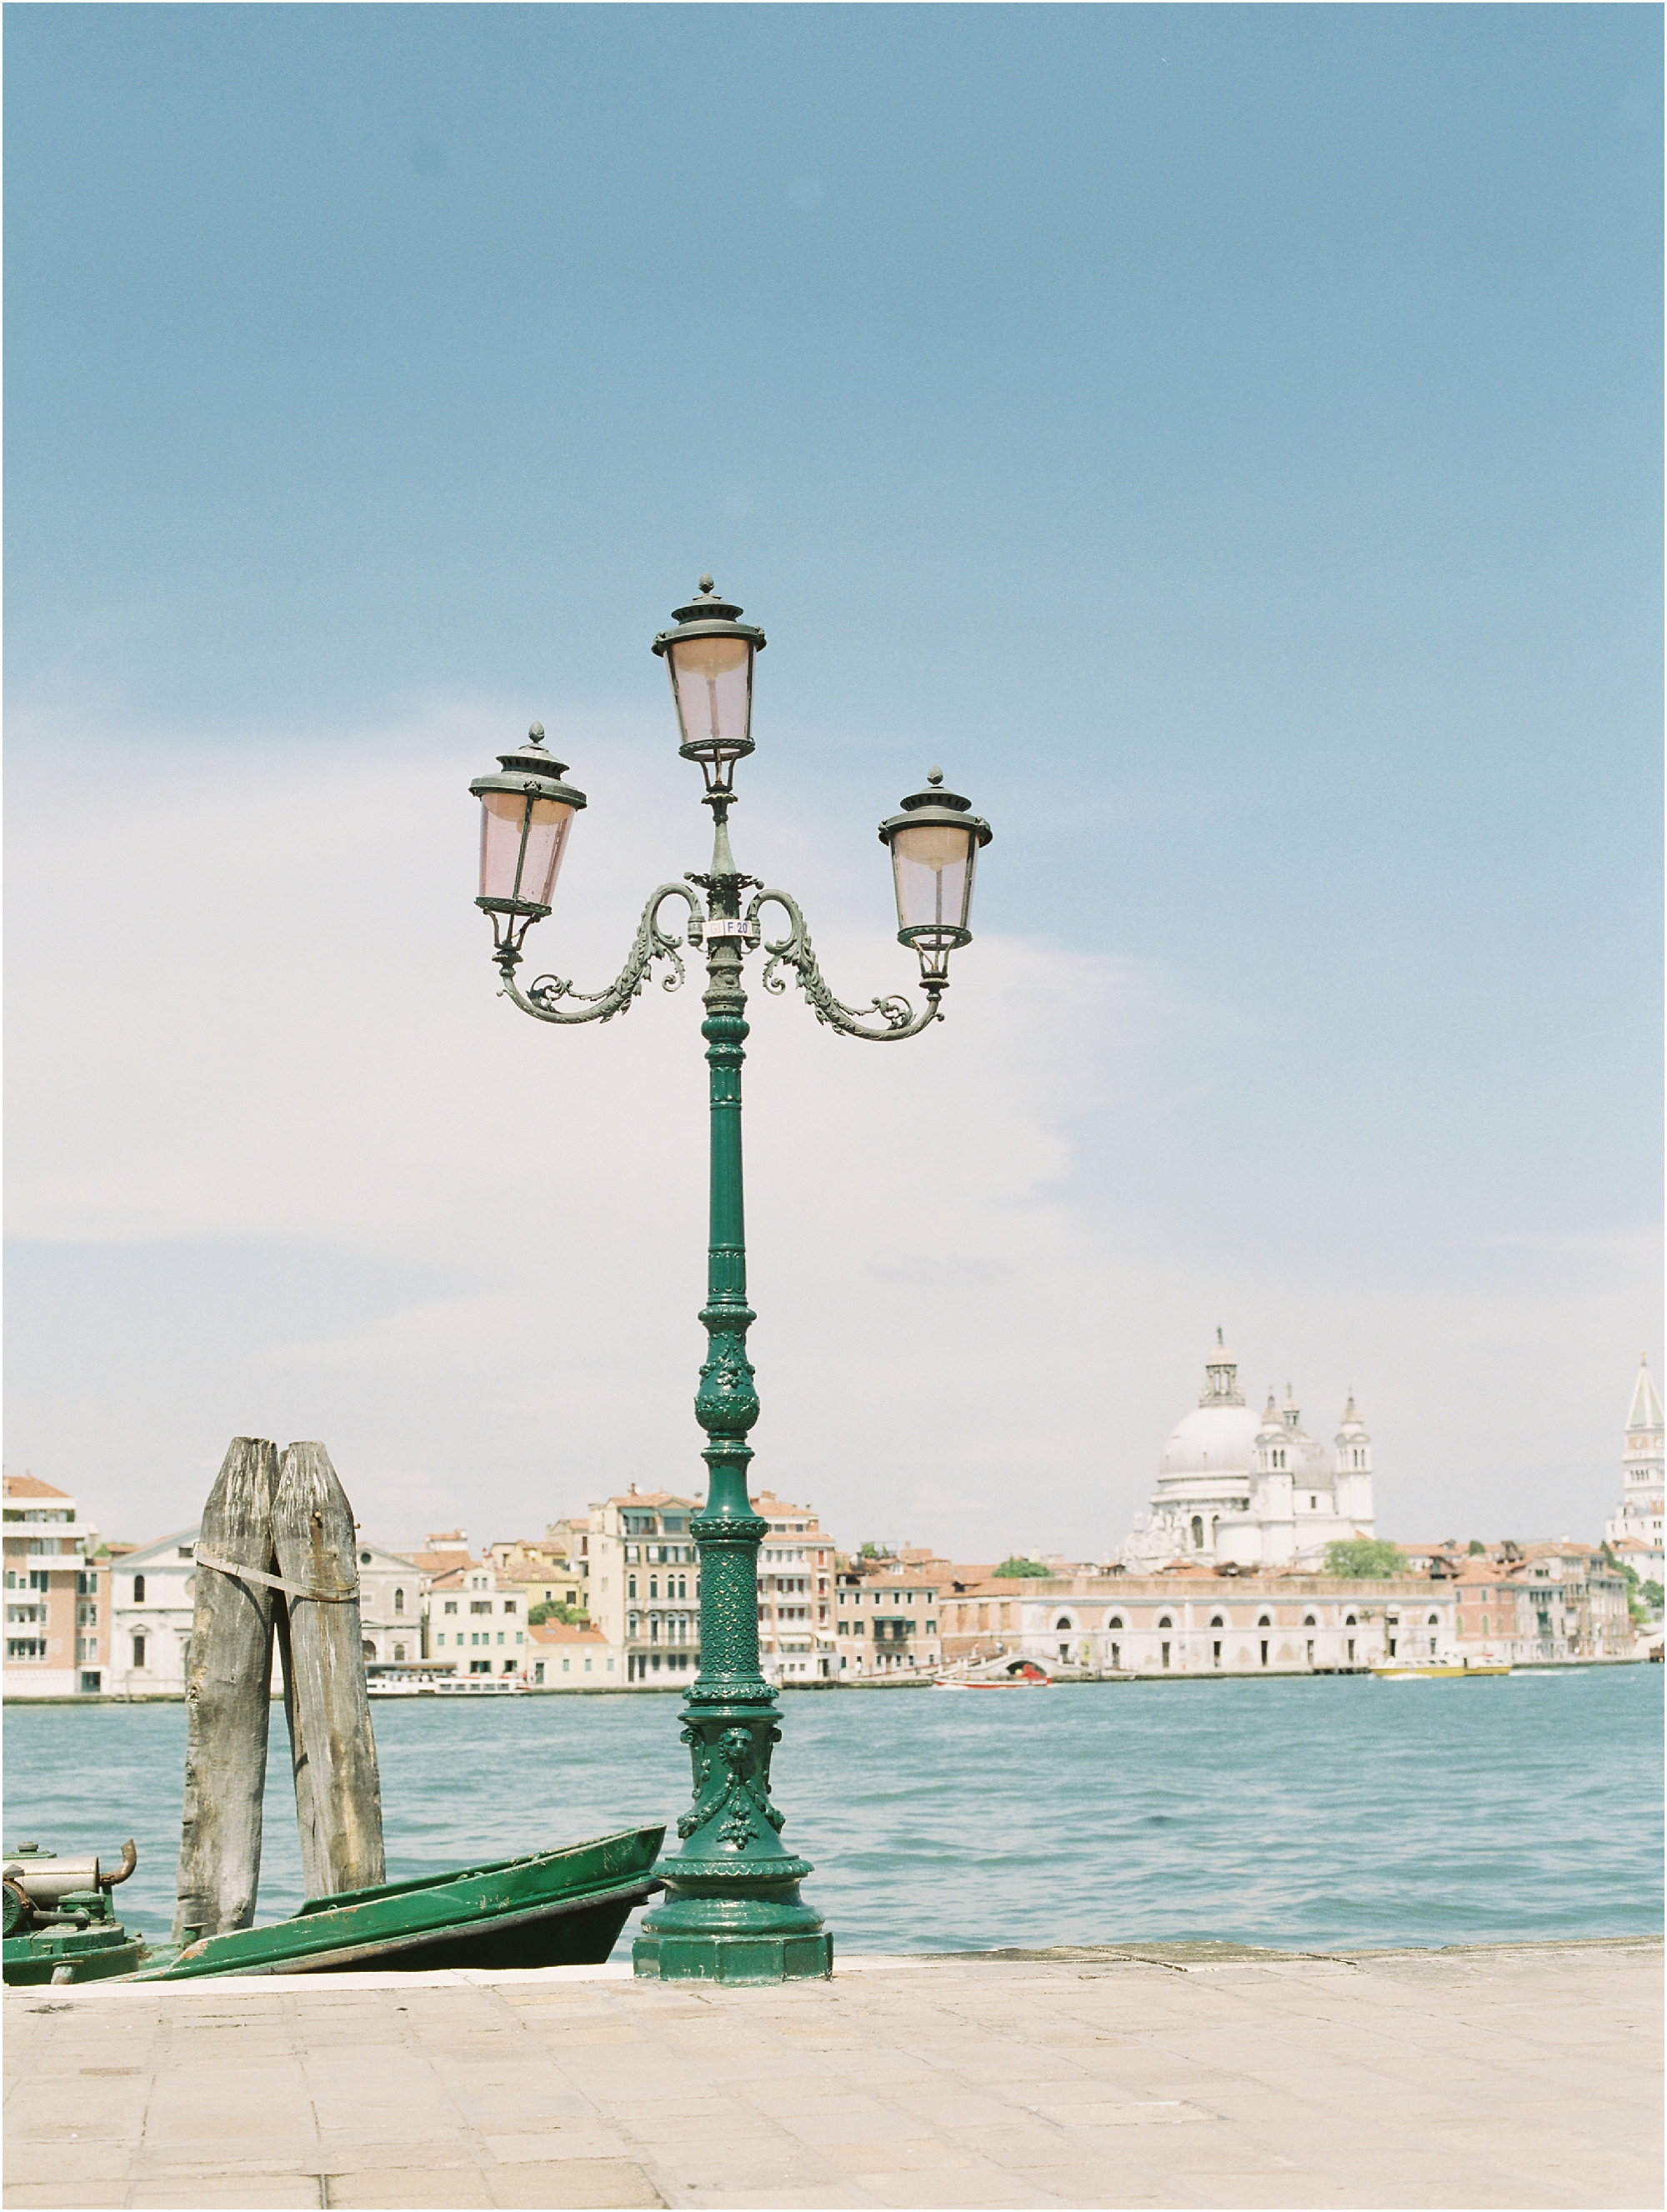 Lamp post with Venice in the background